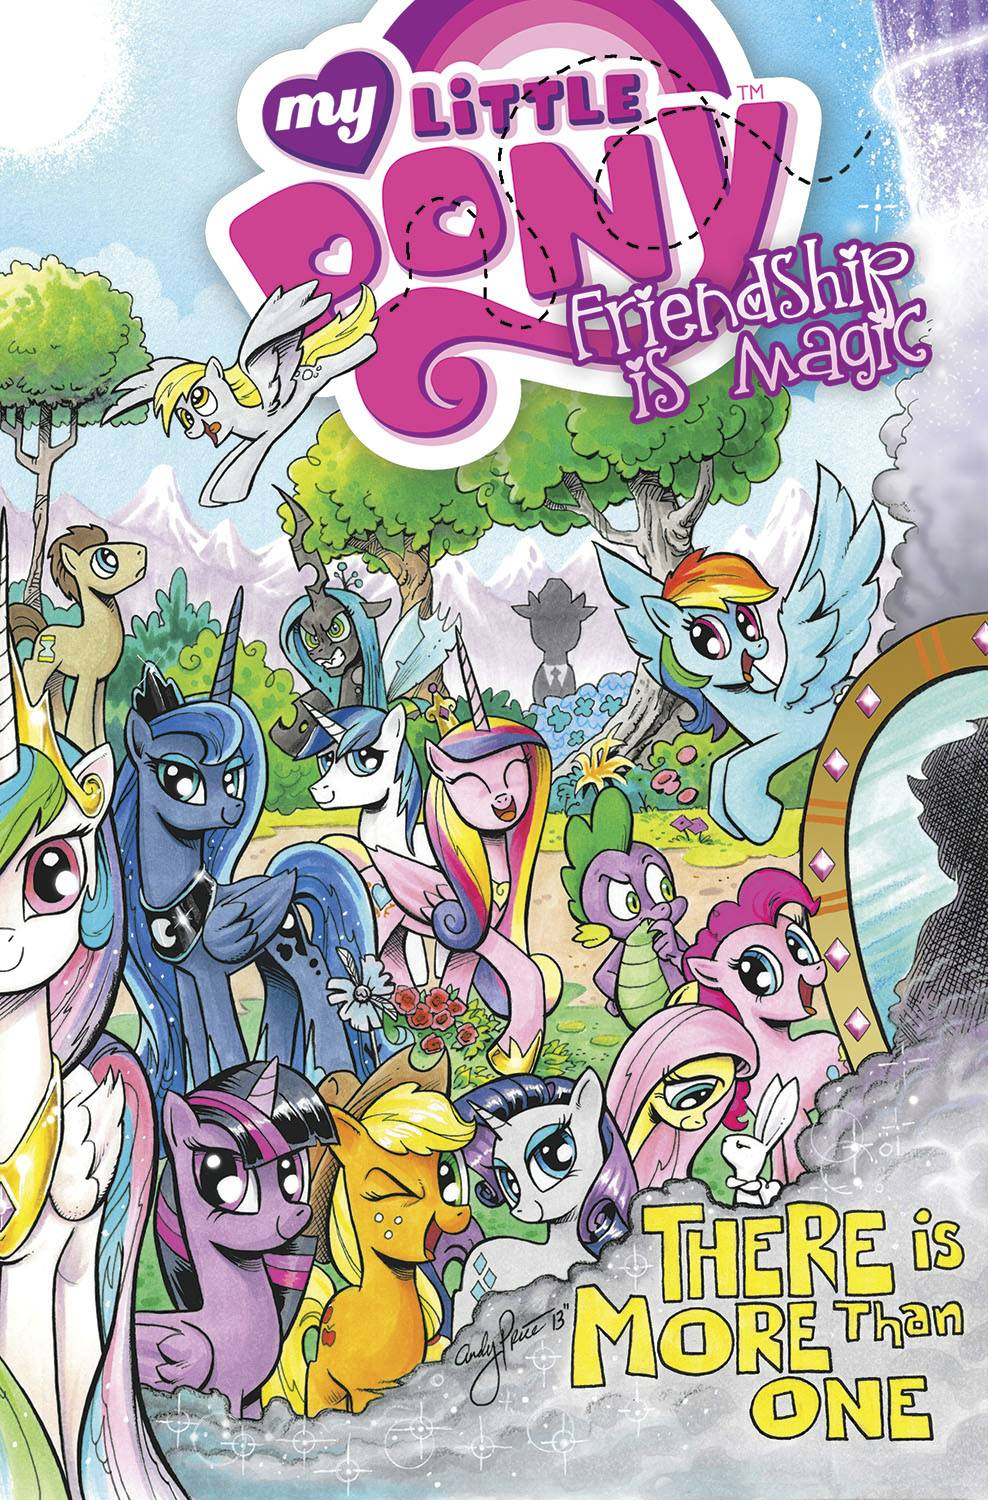 MY LITTLE PONY: FRIENDSHIP IS MAGIC VOL 05